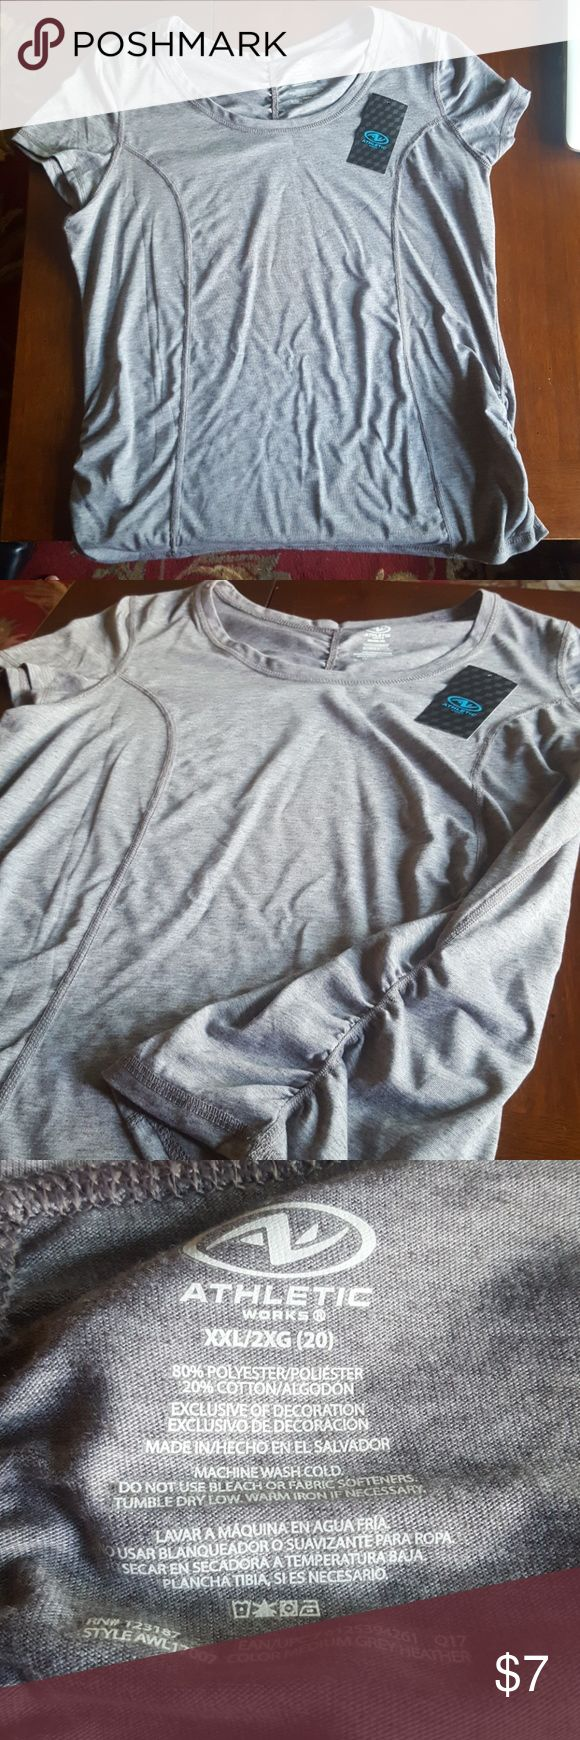 Heather Gray Athletic 2X T-shirt. Heather Gray Athletic 2X T-shirt. Gathers on both sides. New never worn. Runs a bit on the smaller side. Excellent condition. Size equals 20. 80% Polyester, 20% Cotton. Moisture Wicking to keep you dry and cool. Athletic Works Tops Tees - Short Sleeve